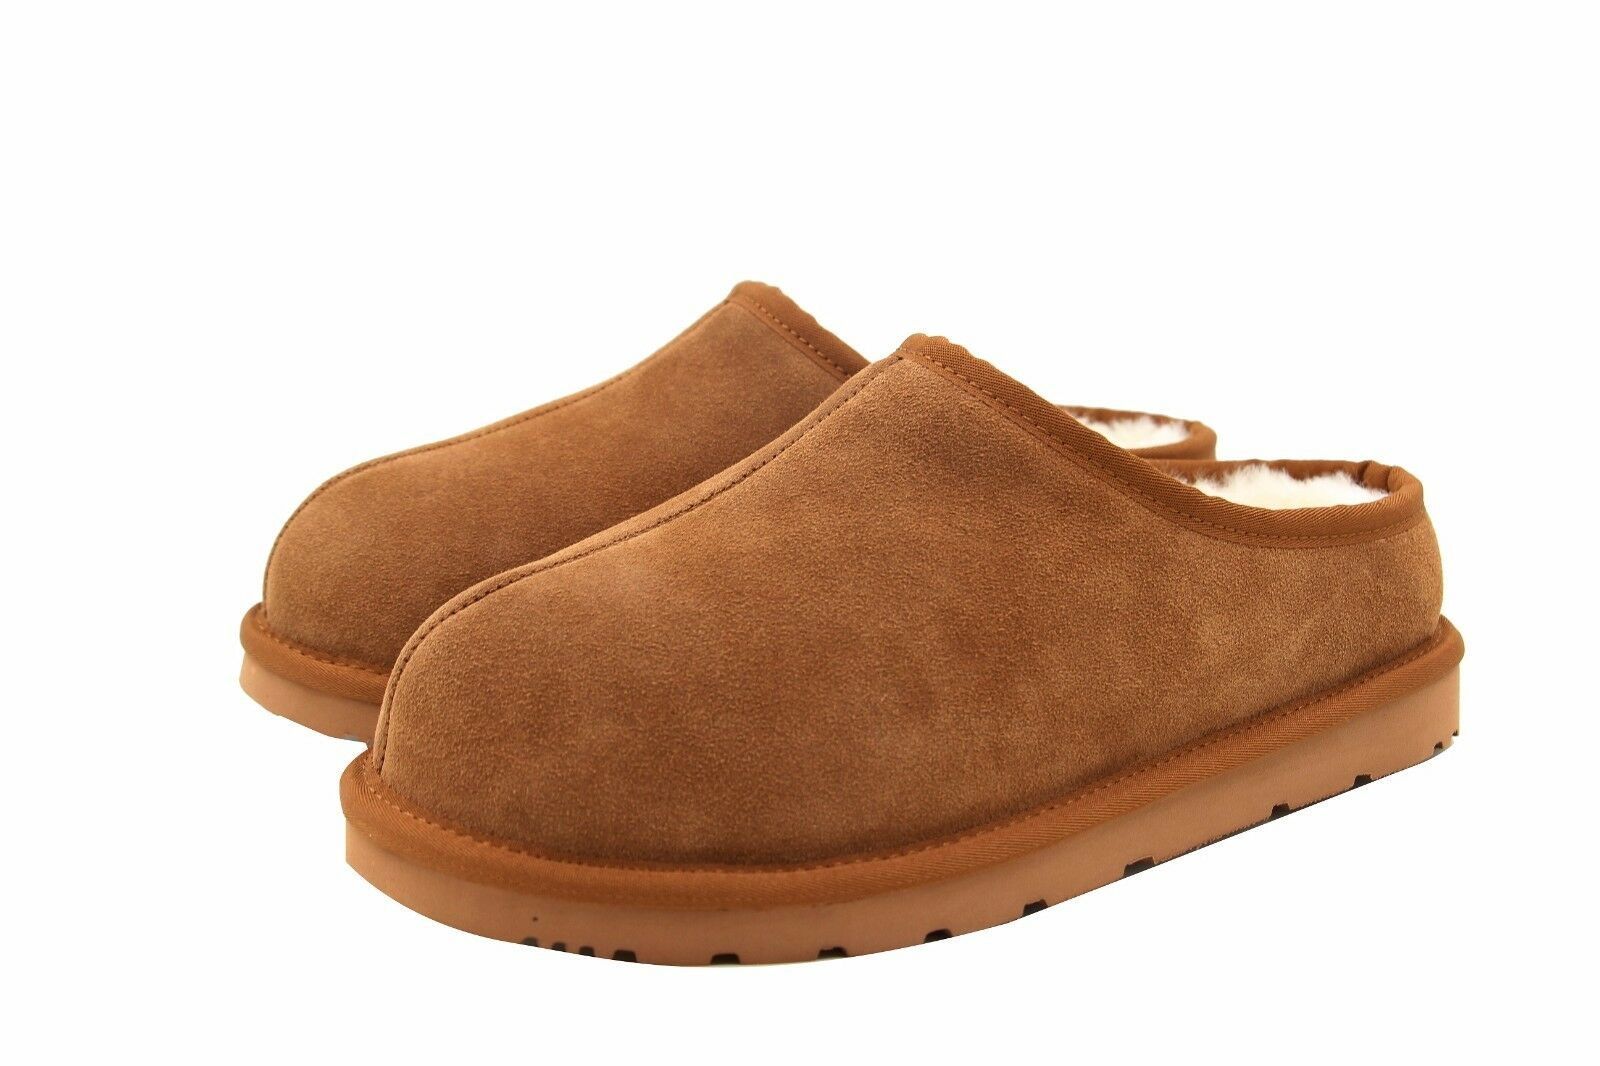 SUPERLAMB LADIES SHEEPSKIN HARD SOLE CLOG SLIPPERS